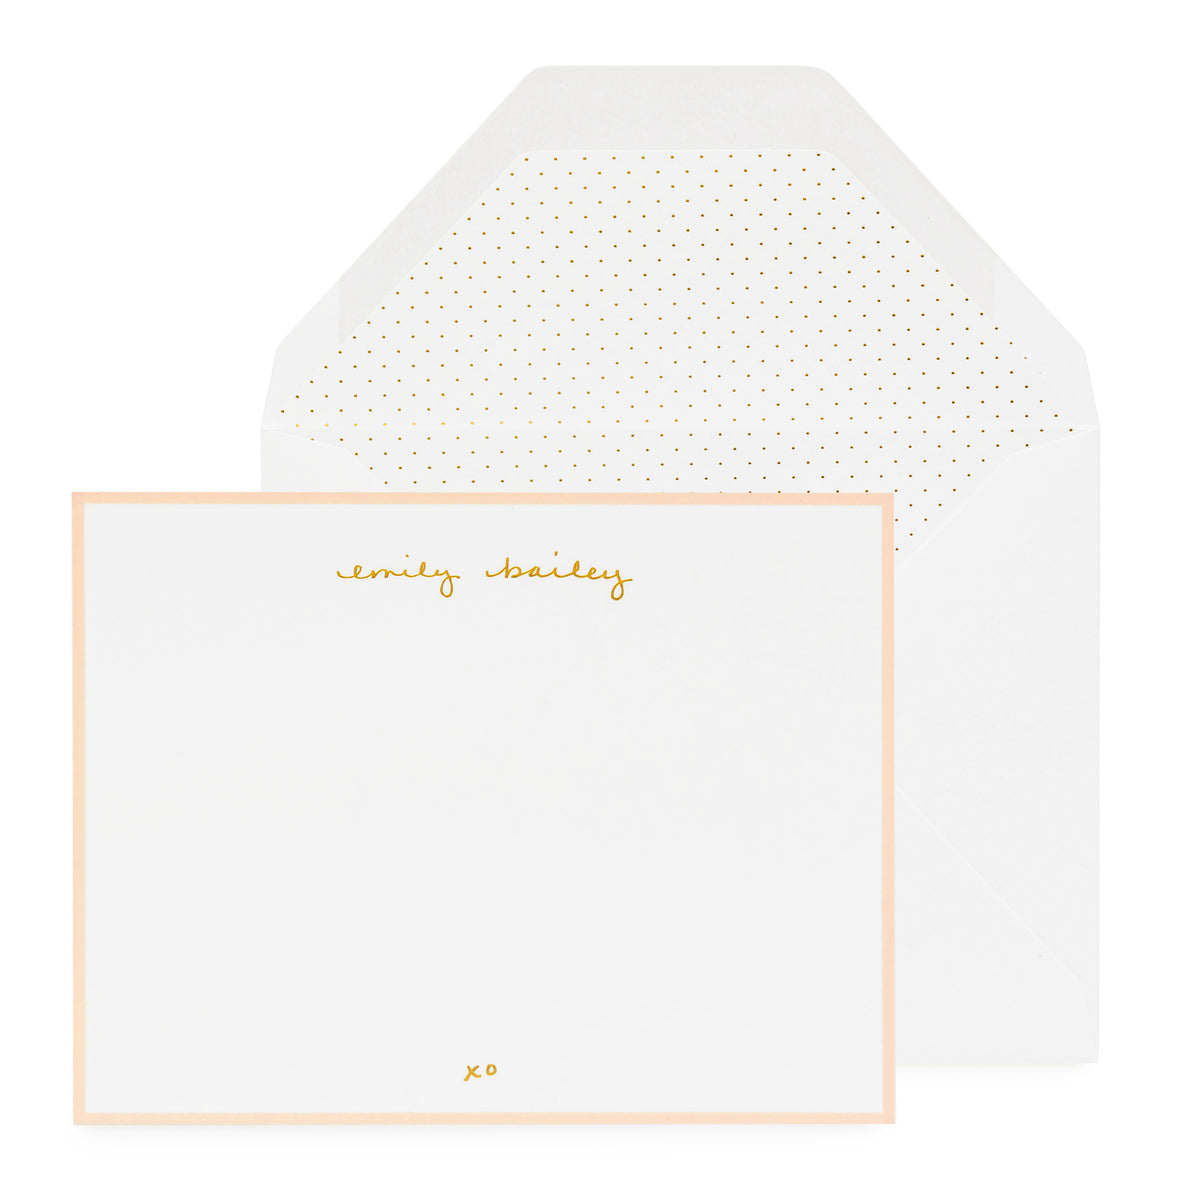 Personalized stationery with gold foil name and pink border